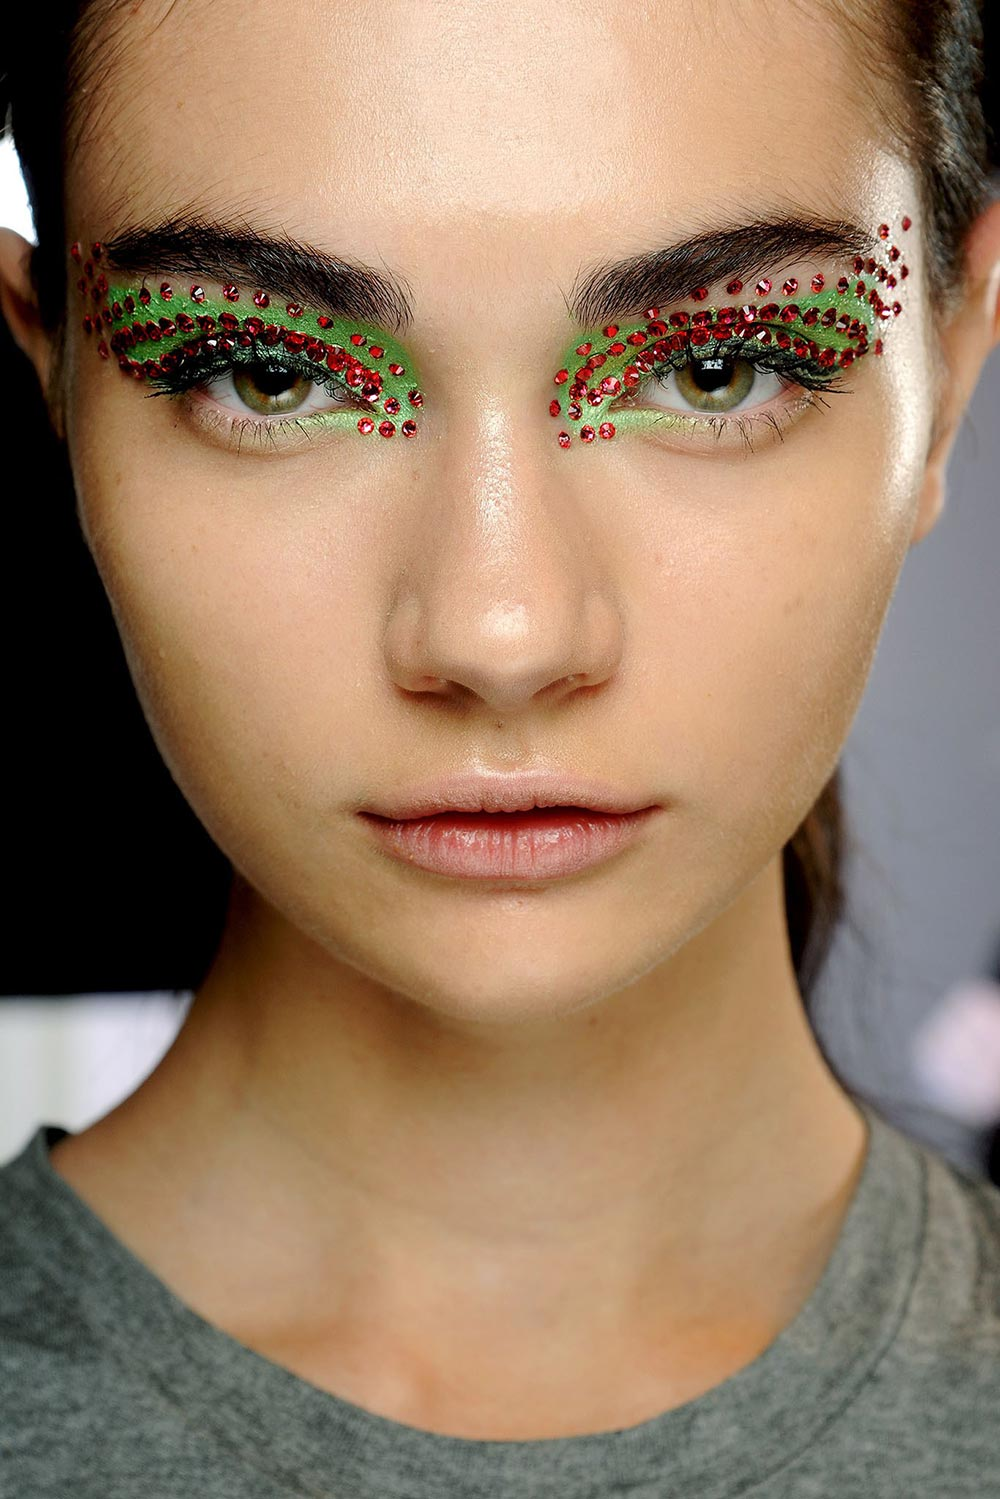 Christian Dior Spring/Summer 2013 runway beauty